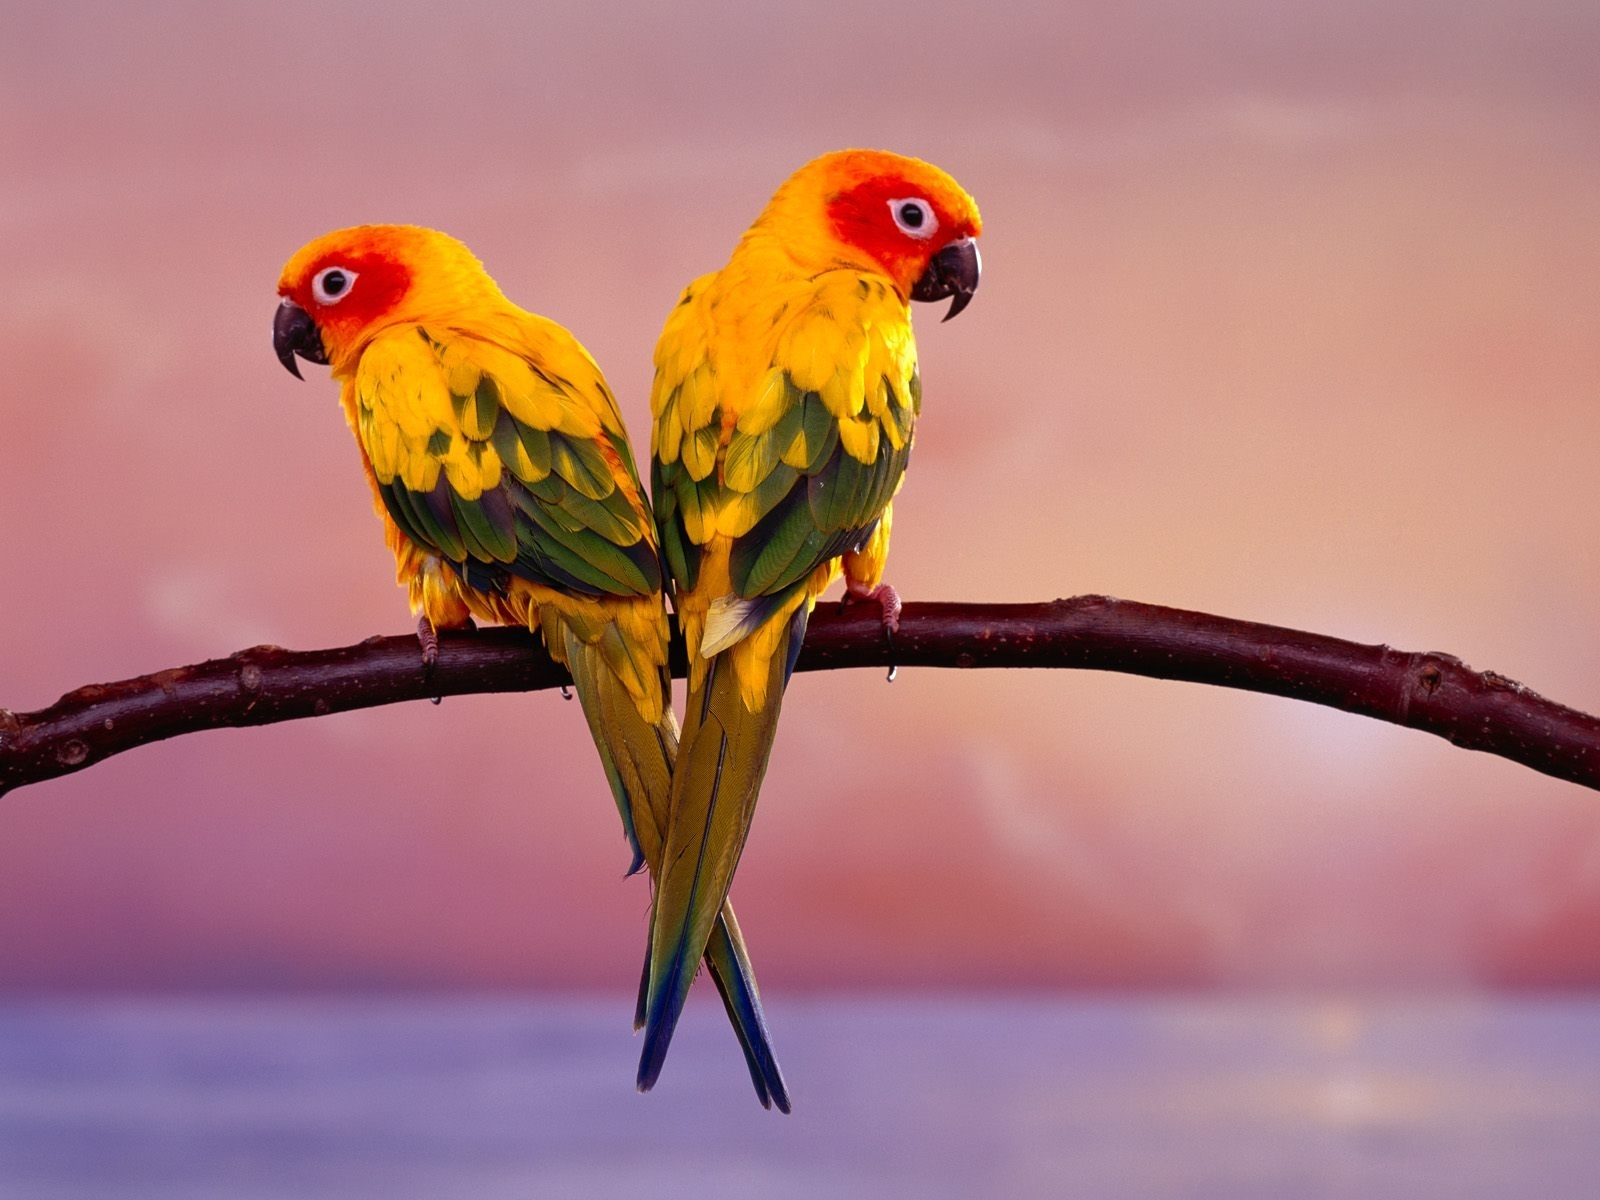 2406 download wallpaper Animals, Birds, Parrots screensavers and pictures for free